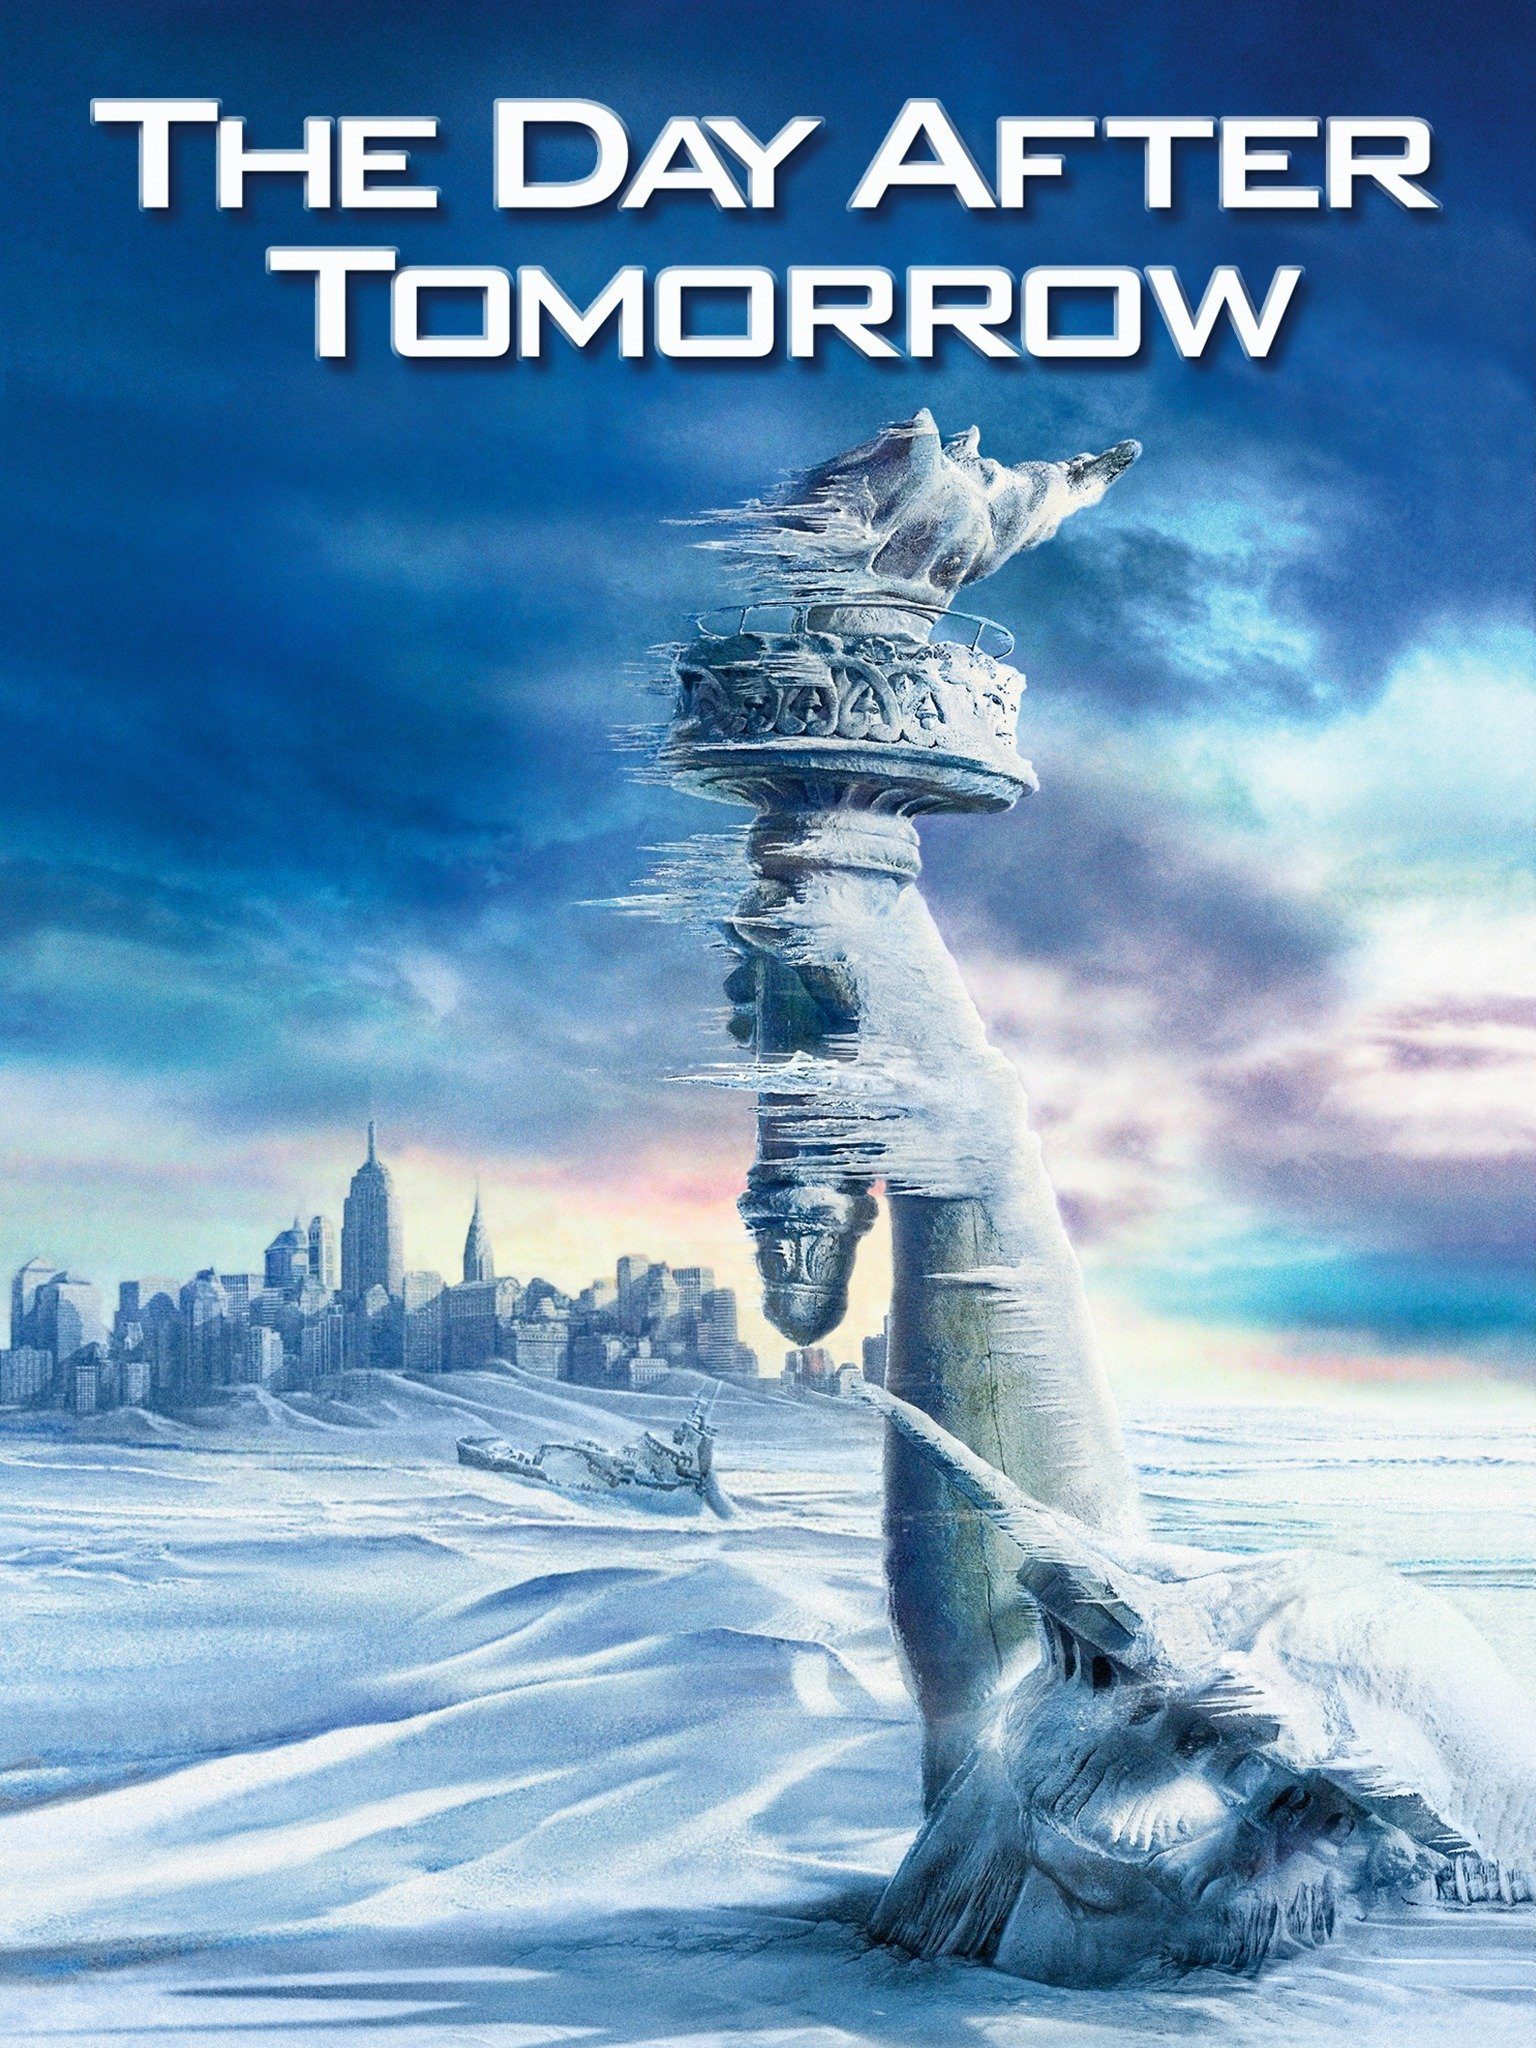 Poster phim The day after tomorrow